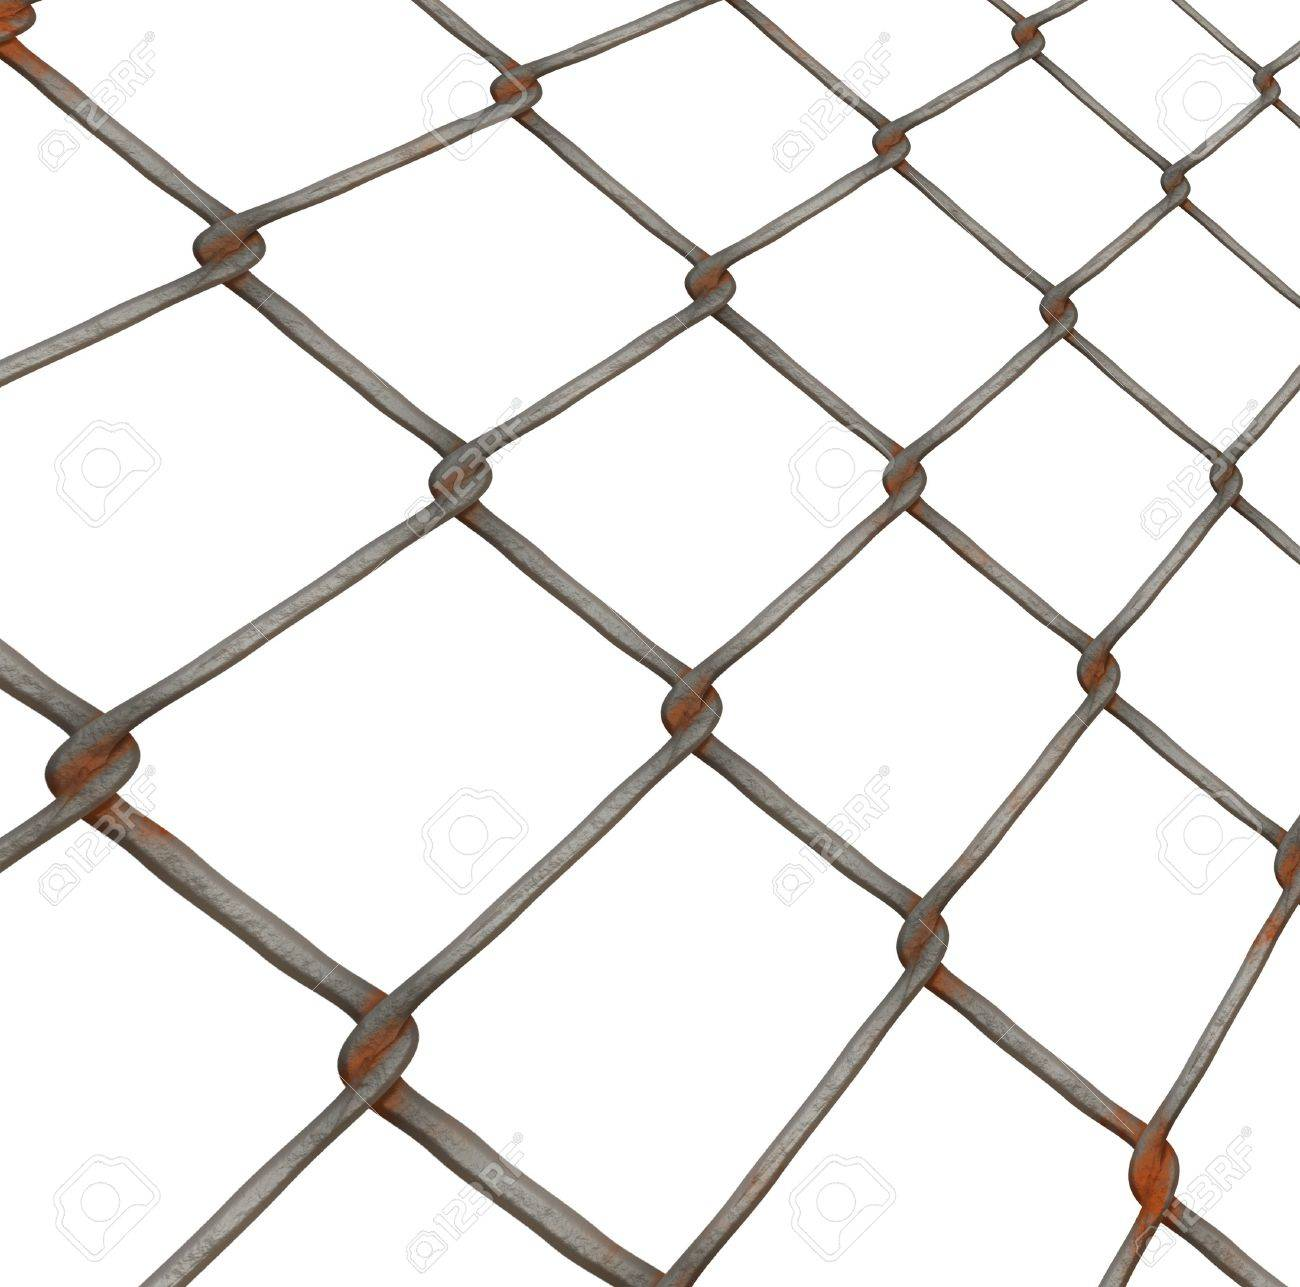 Rusty Chain Link Fence Stock Photo Picture And Royalty Free Image Image 1789879